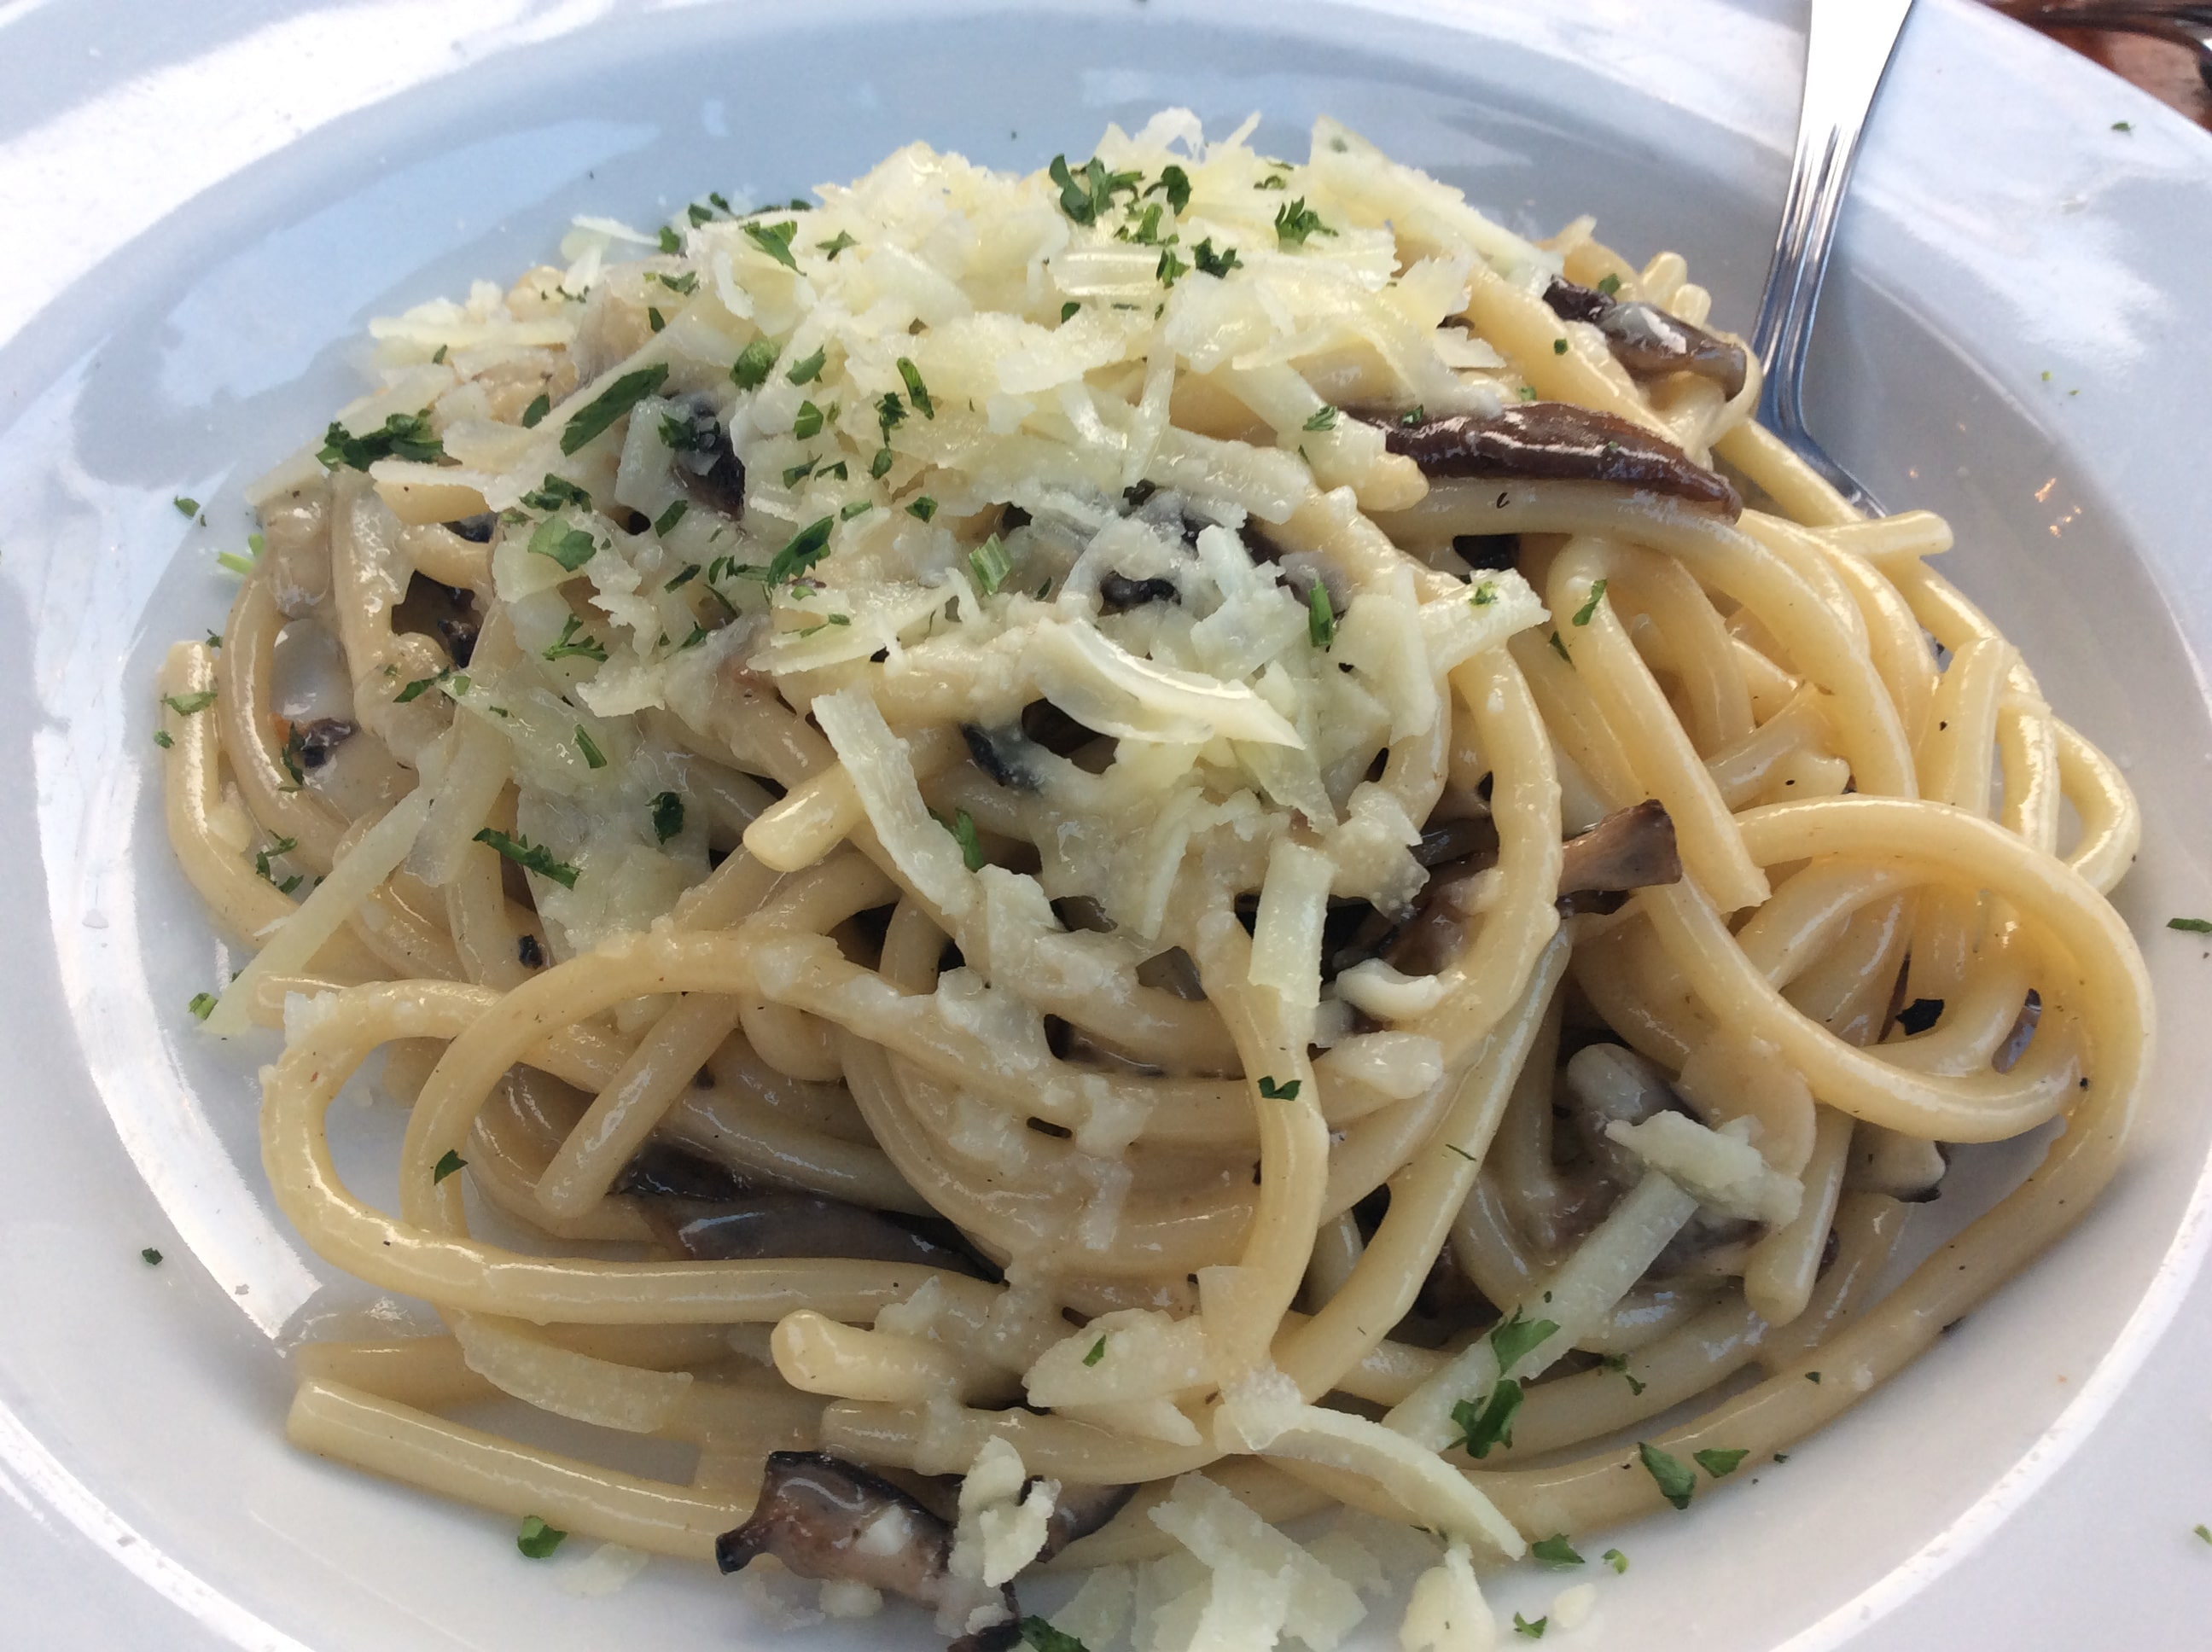 Truffle Butter Pasta the best pasta in michigan is this truffle butter dish, says